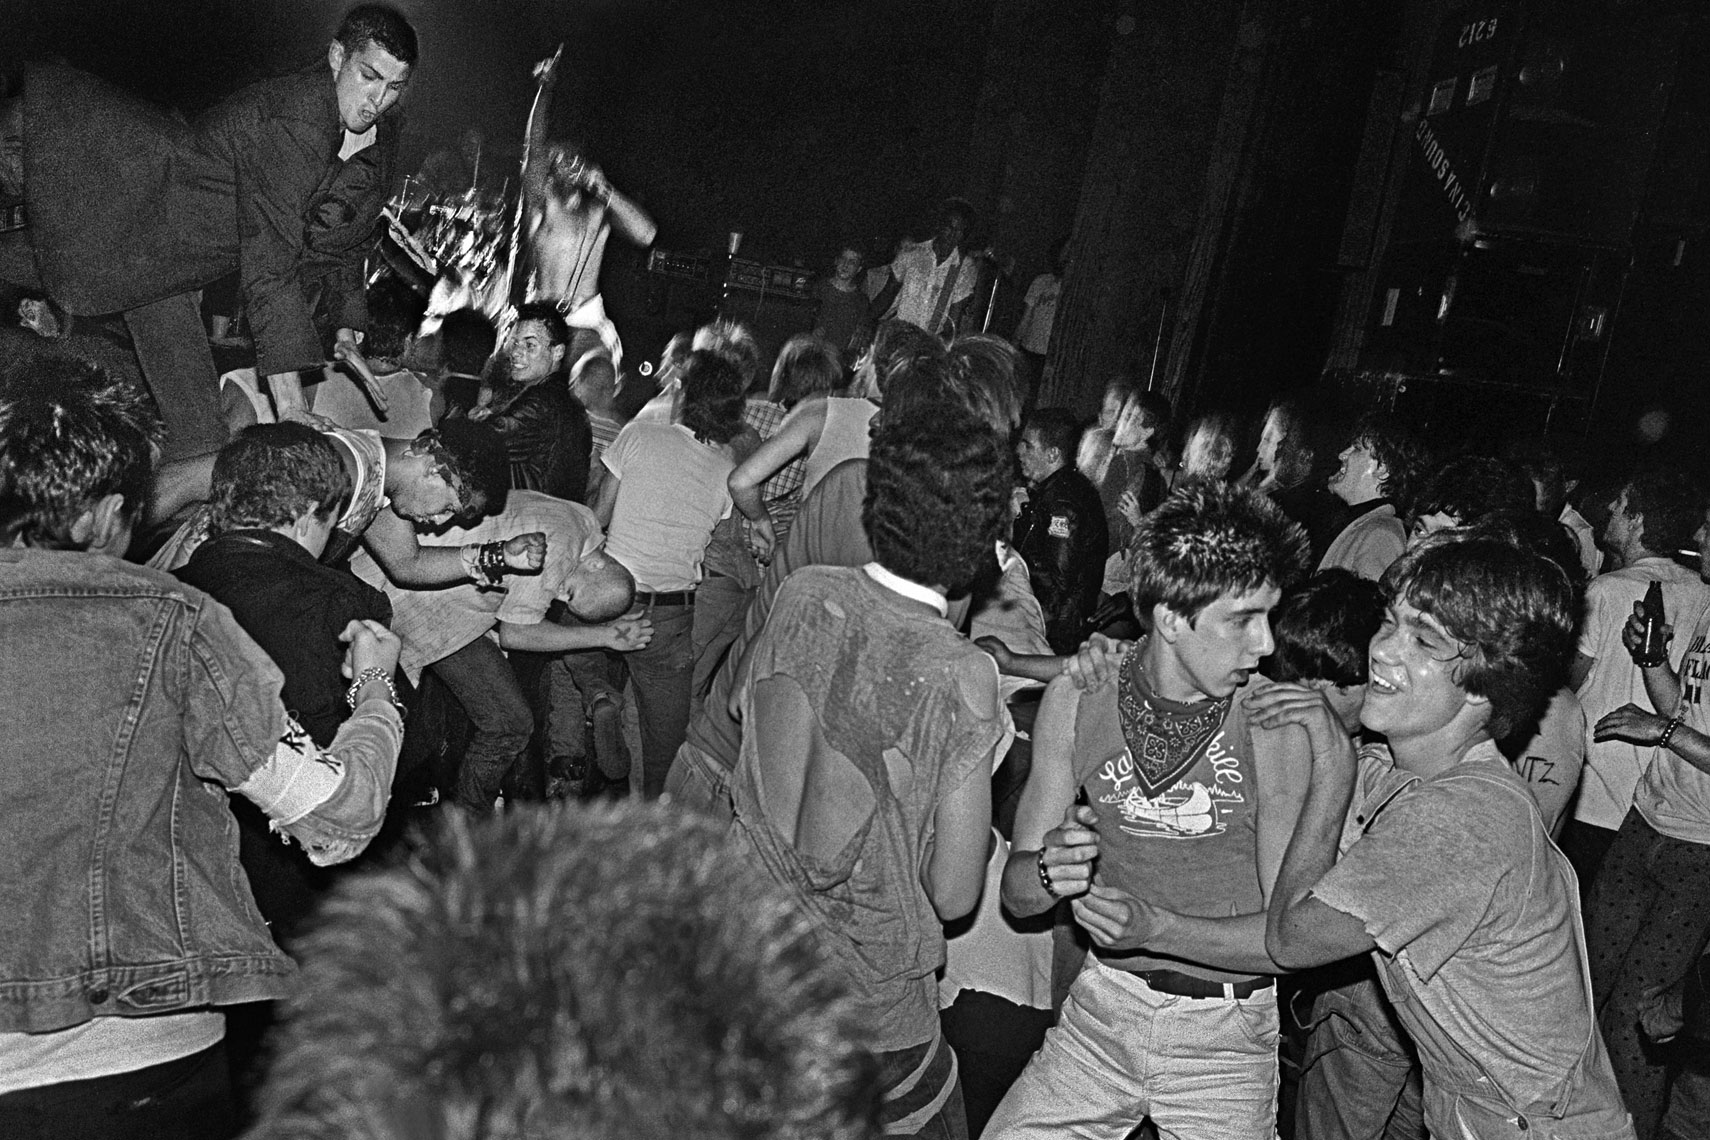 010_010_Bad_Brains_Irving_Plaza